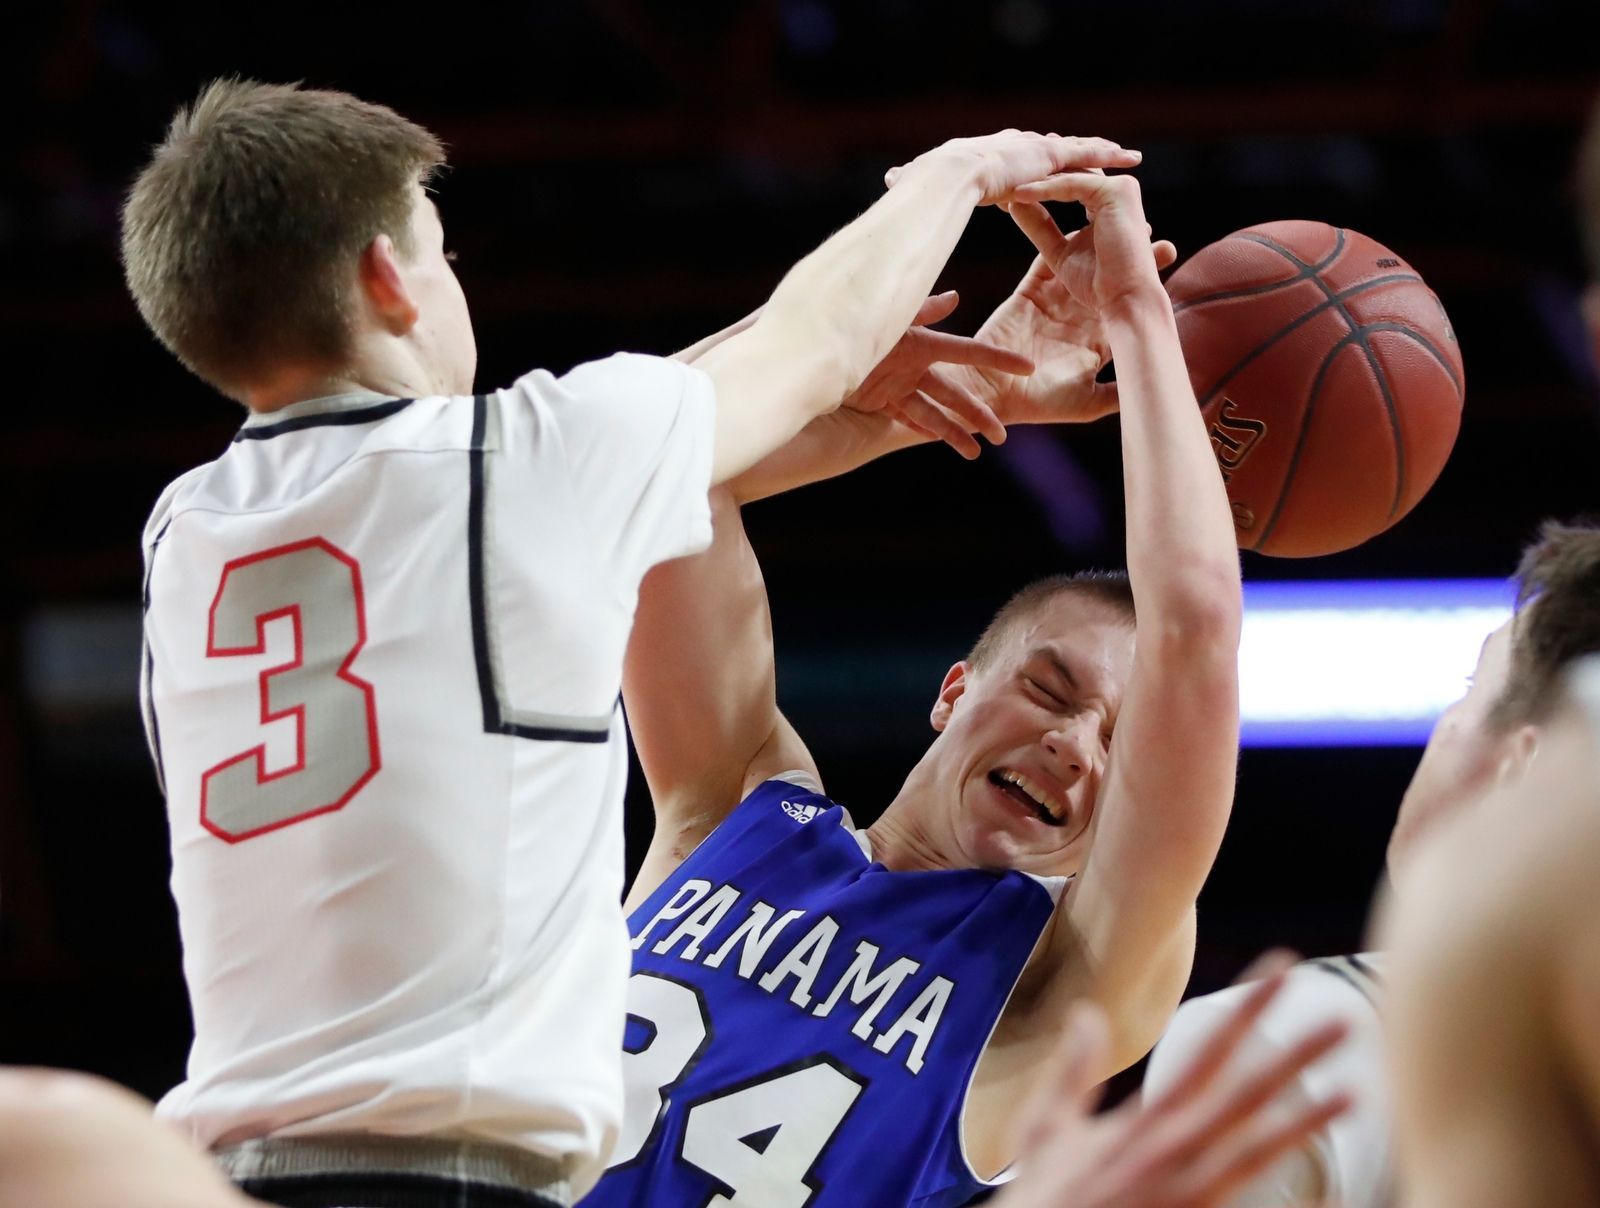 Panama player Gerrit Hinsdale has the ball knocked away by Oppenheim-Ephratah/St. Johnsville defender Logan Dillenbeck during the second half.